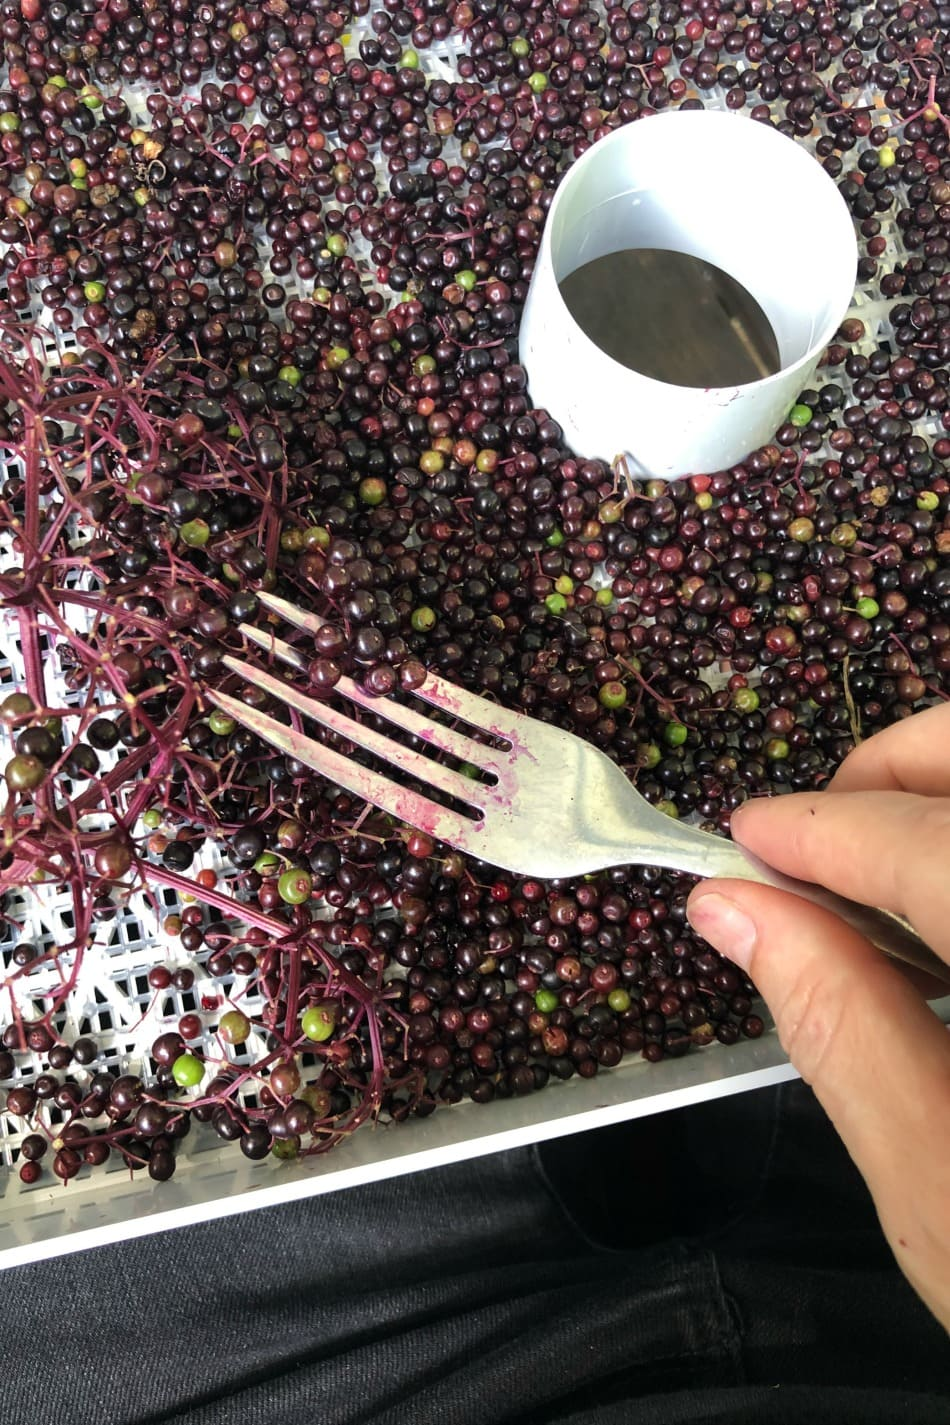 Harvesting & Preserving Elderberries | Growing Up Herbal | It's that time of the year! Elderberry harvesting season! I'm sharing a bit about harvesting and preserving elderberries for future use in this post.